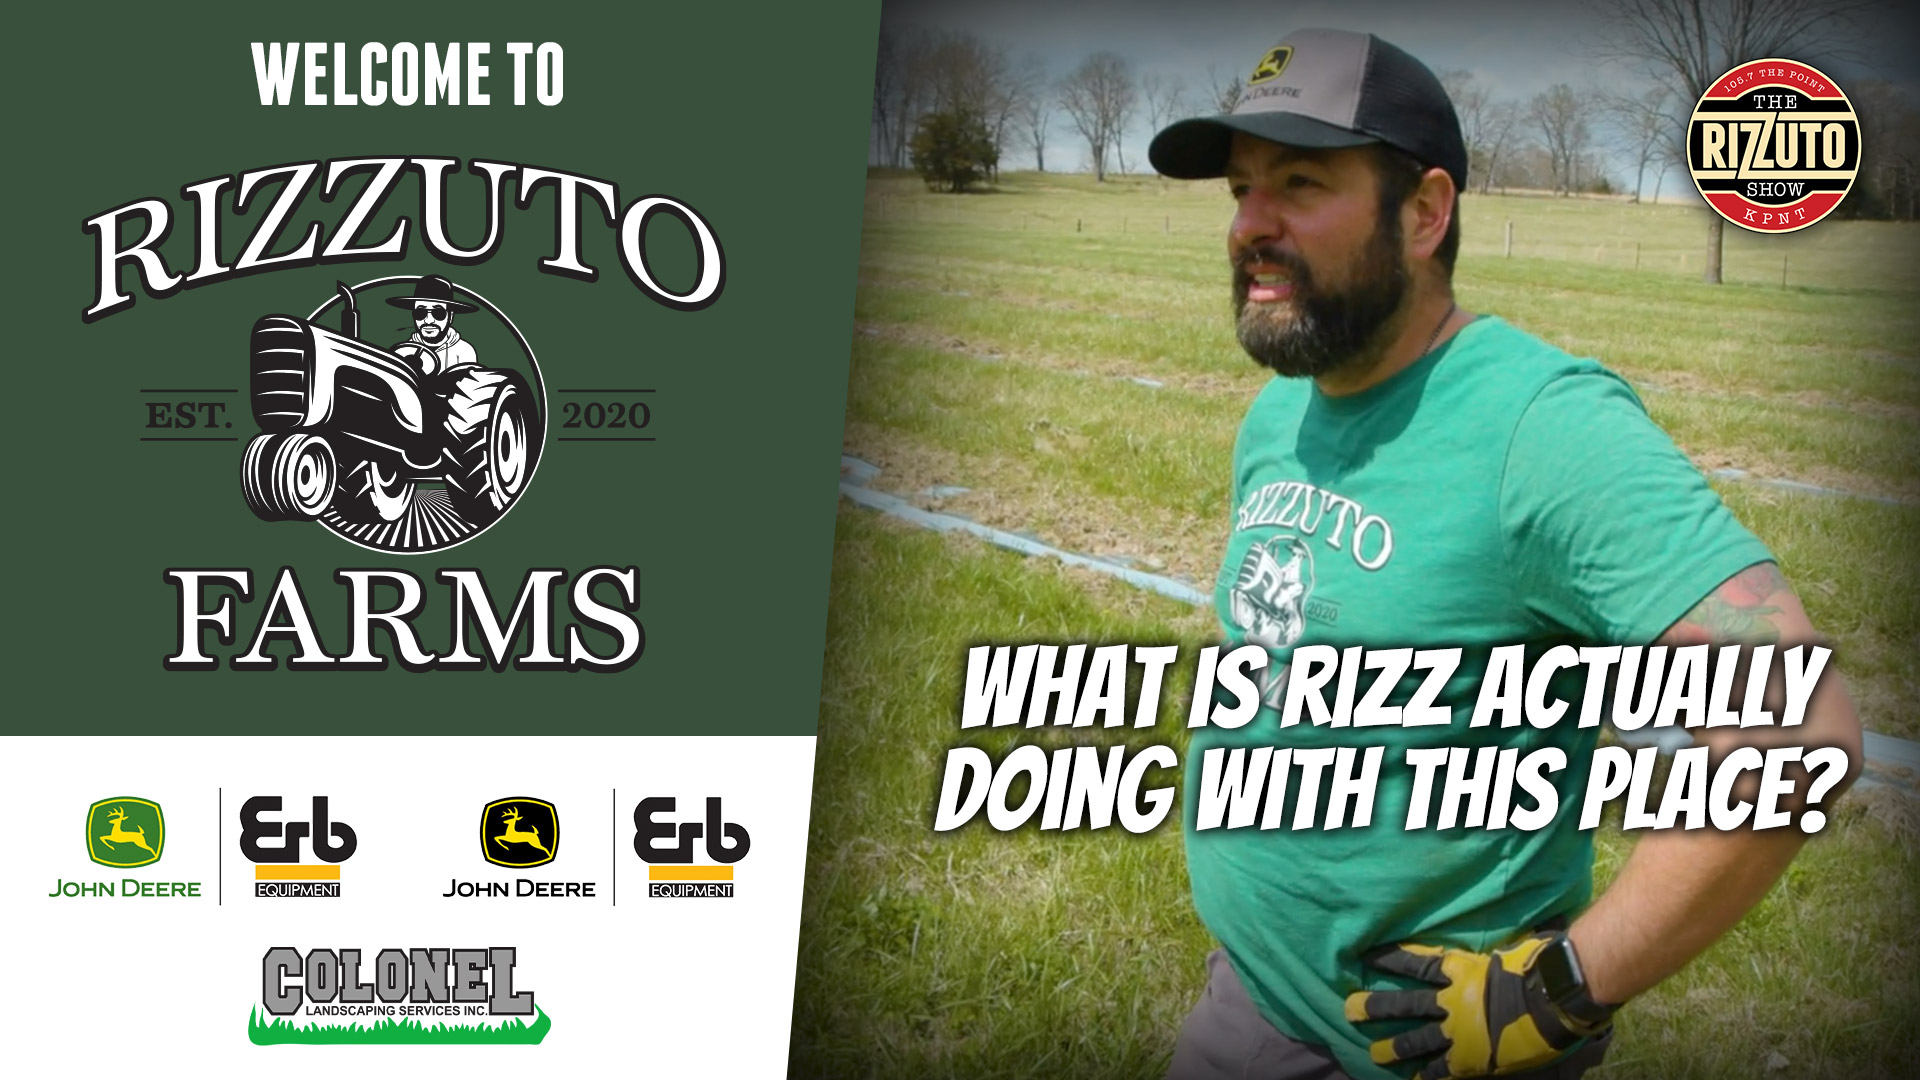 What is RIZZUTO actually doing at RIZZ FARMS? Apparently it has something to do with elderberries...